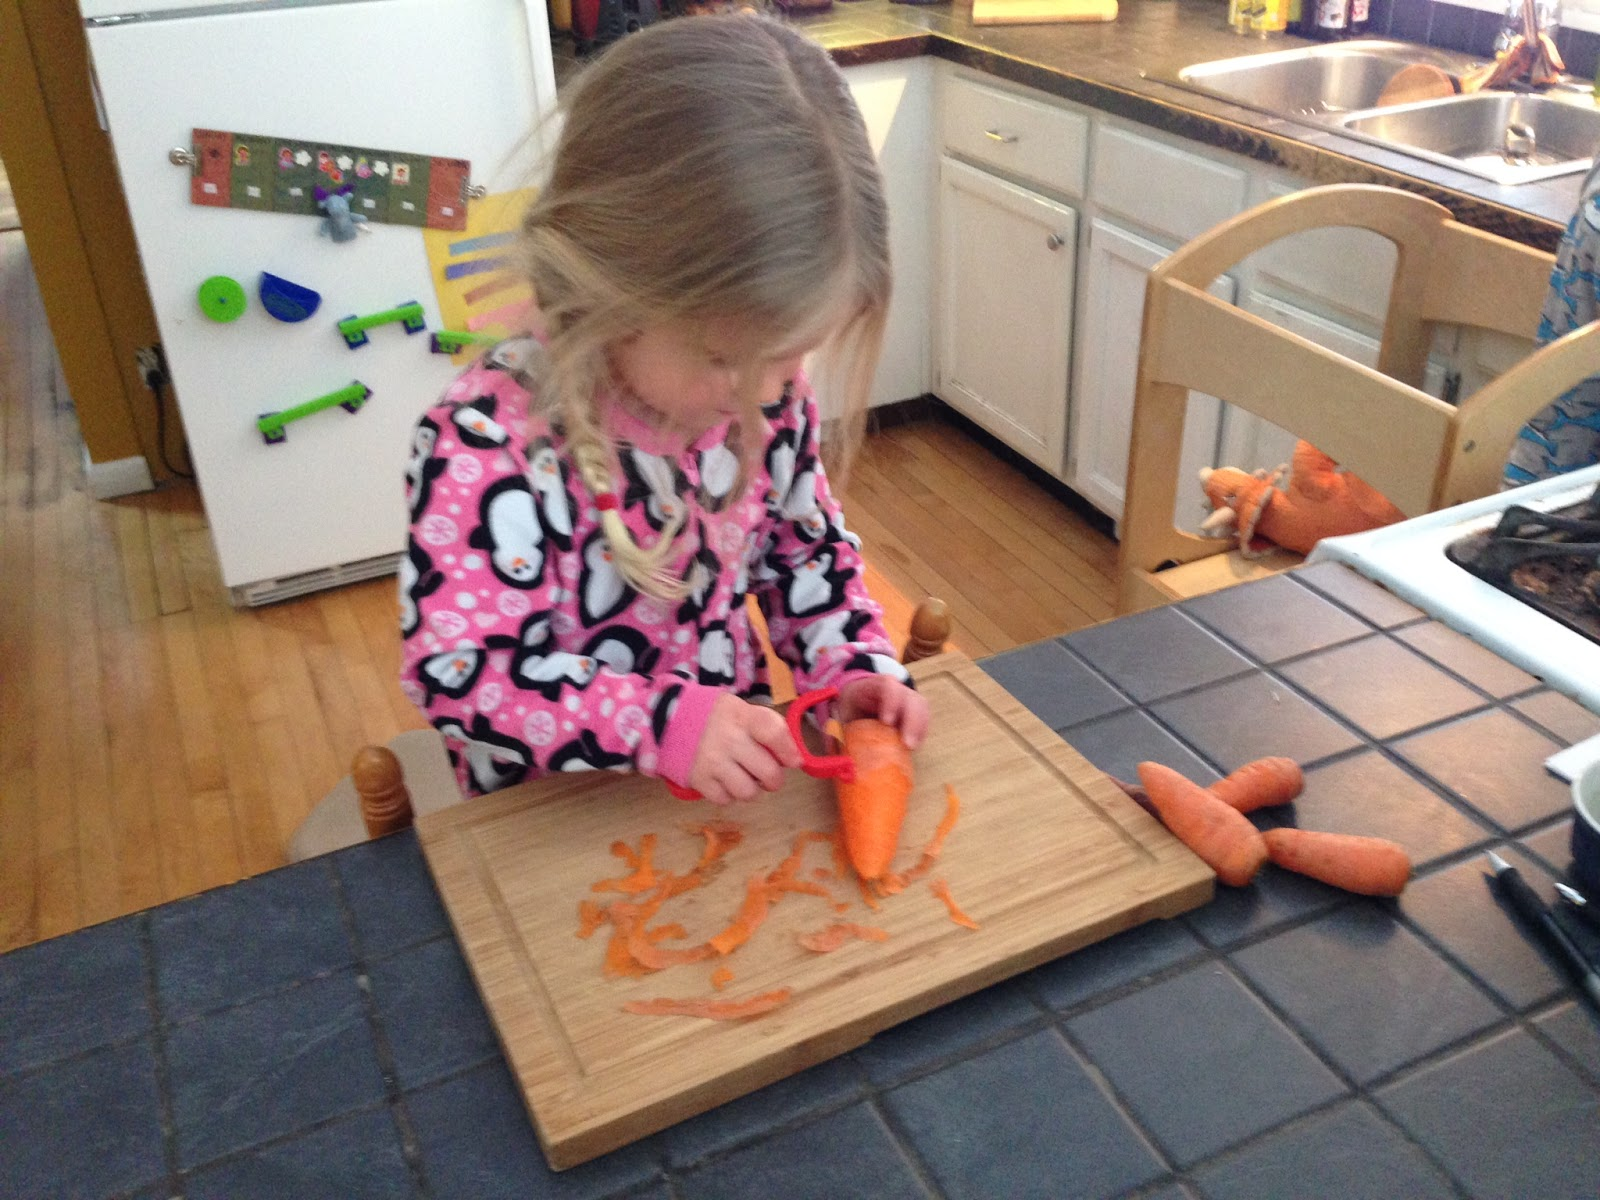 Erin's daughter peeling carrots from their CSA. Picture: Erin Eldermire